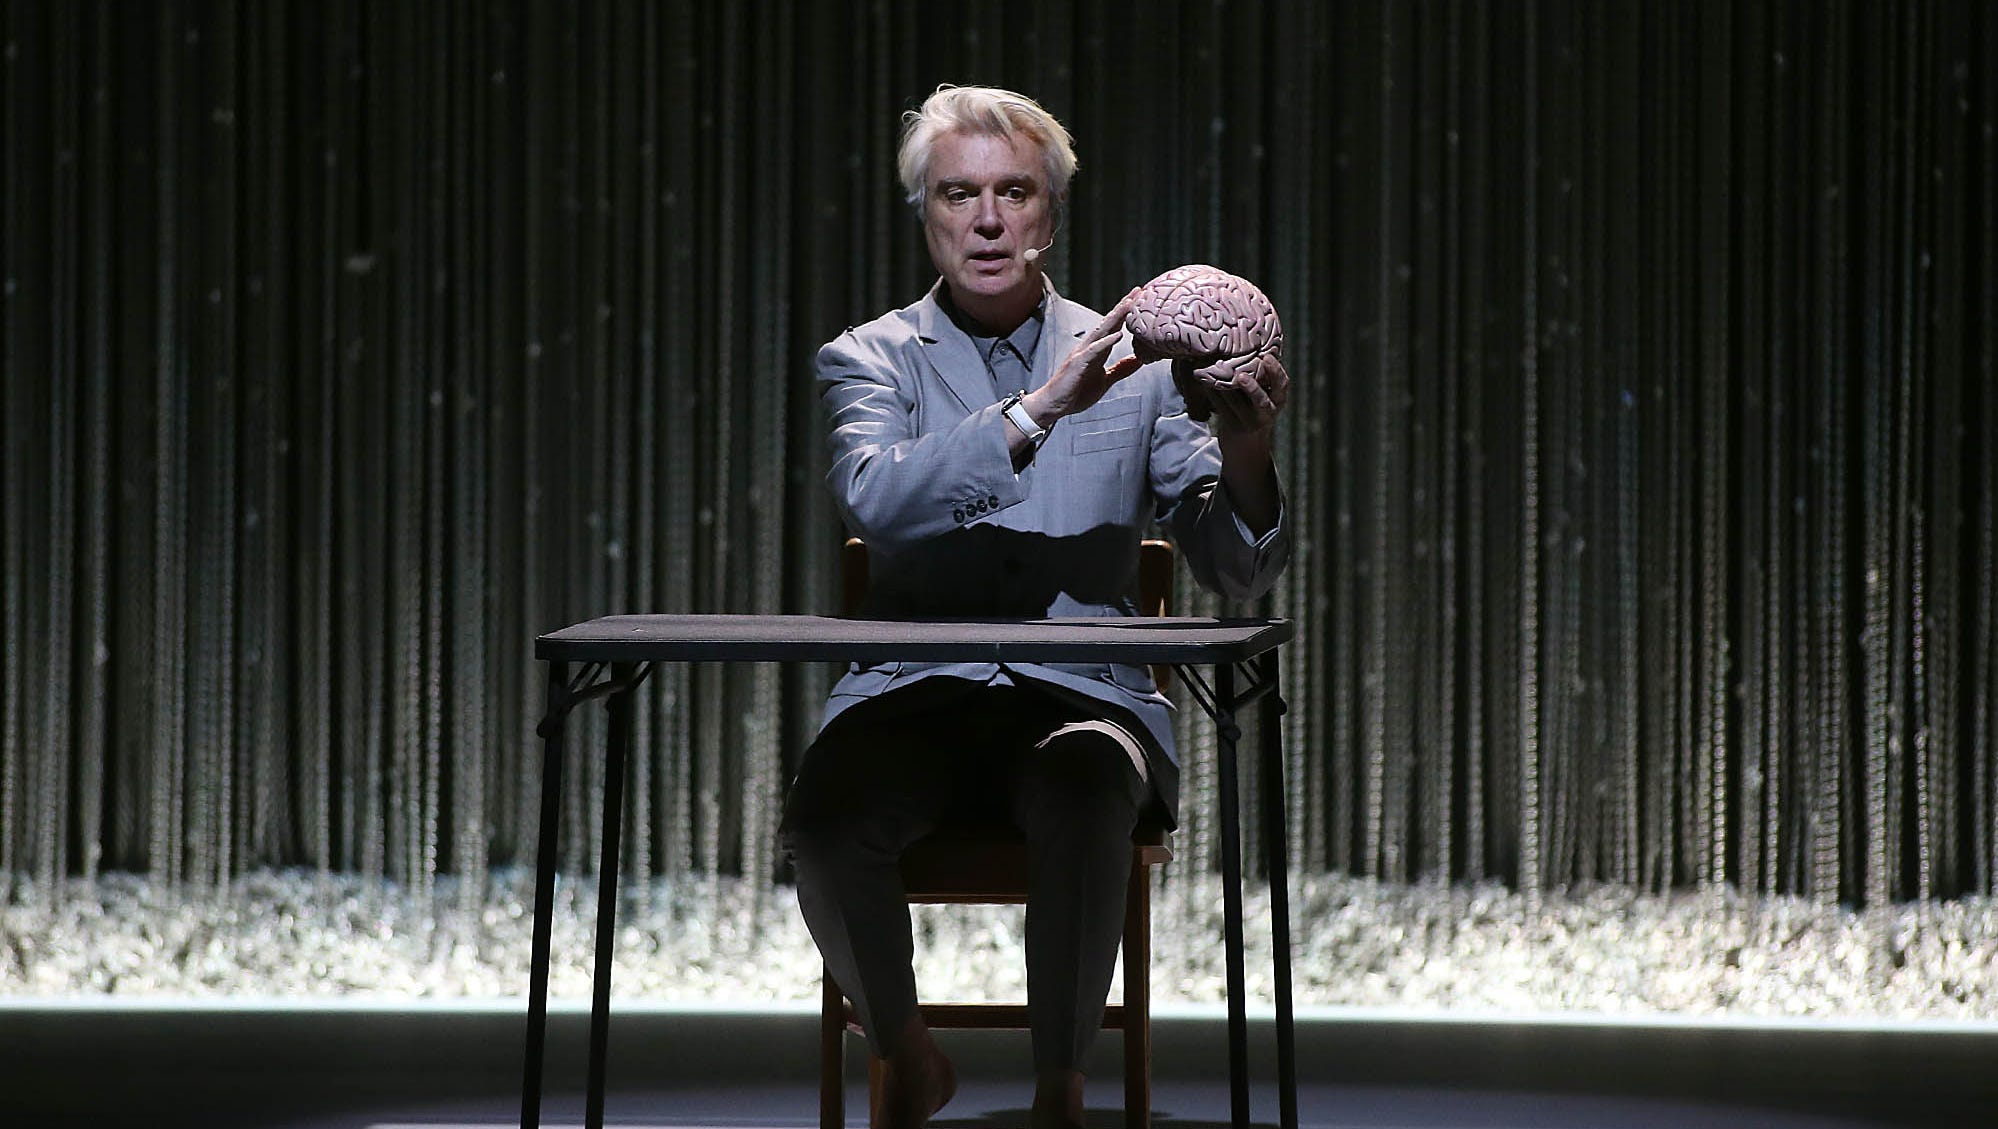 David Byrne remains one of the greatest front men ever on 'American Utopia' tour